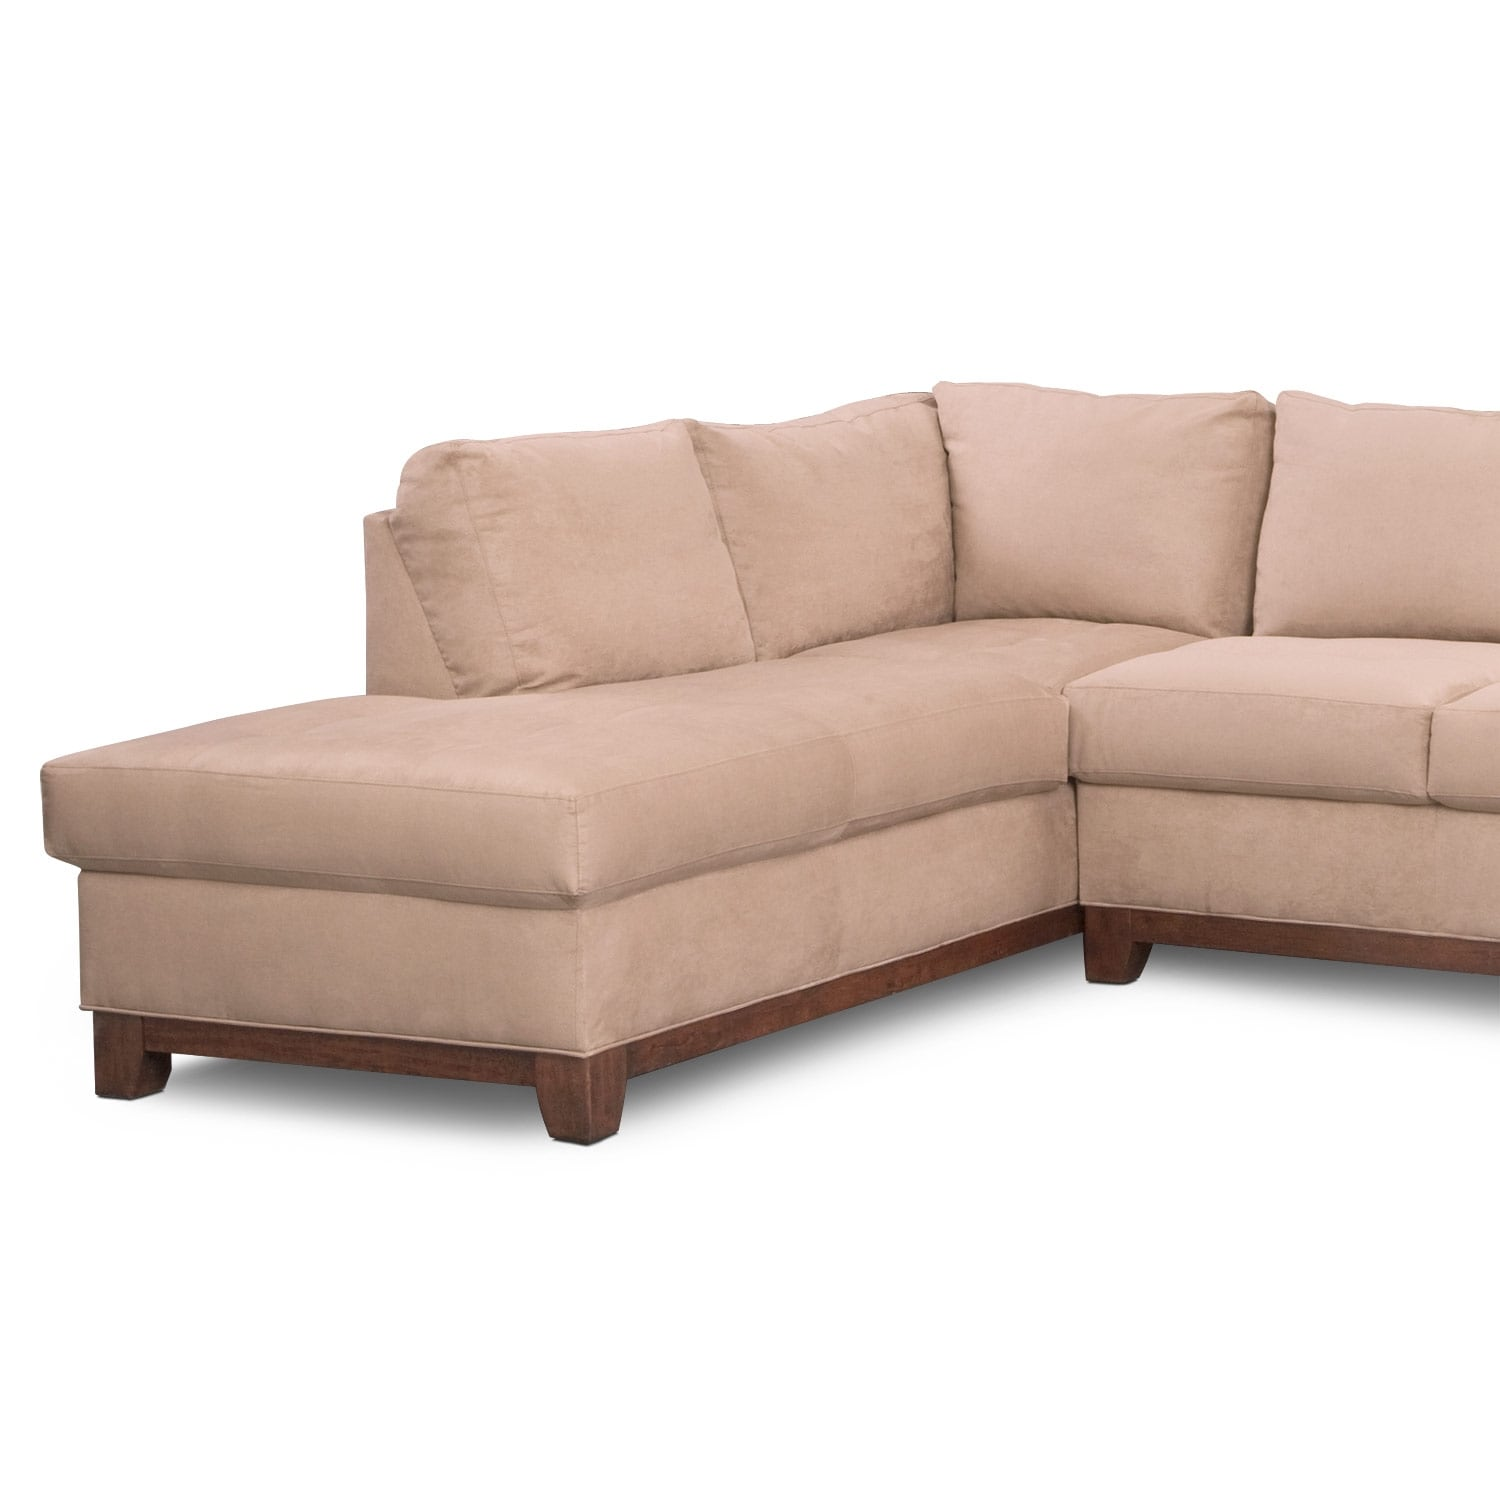 Soho 2 piece sectional with left facing chaise for American signature furniture commercial chaise